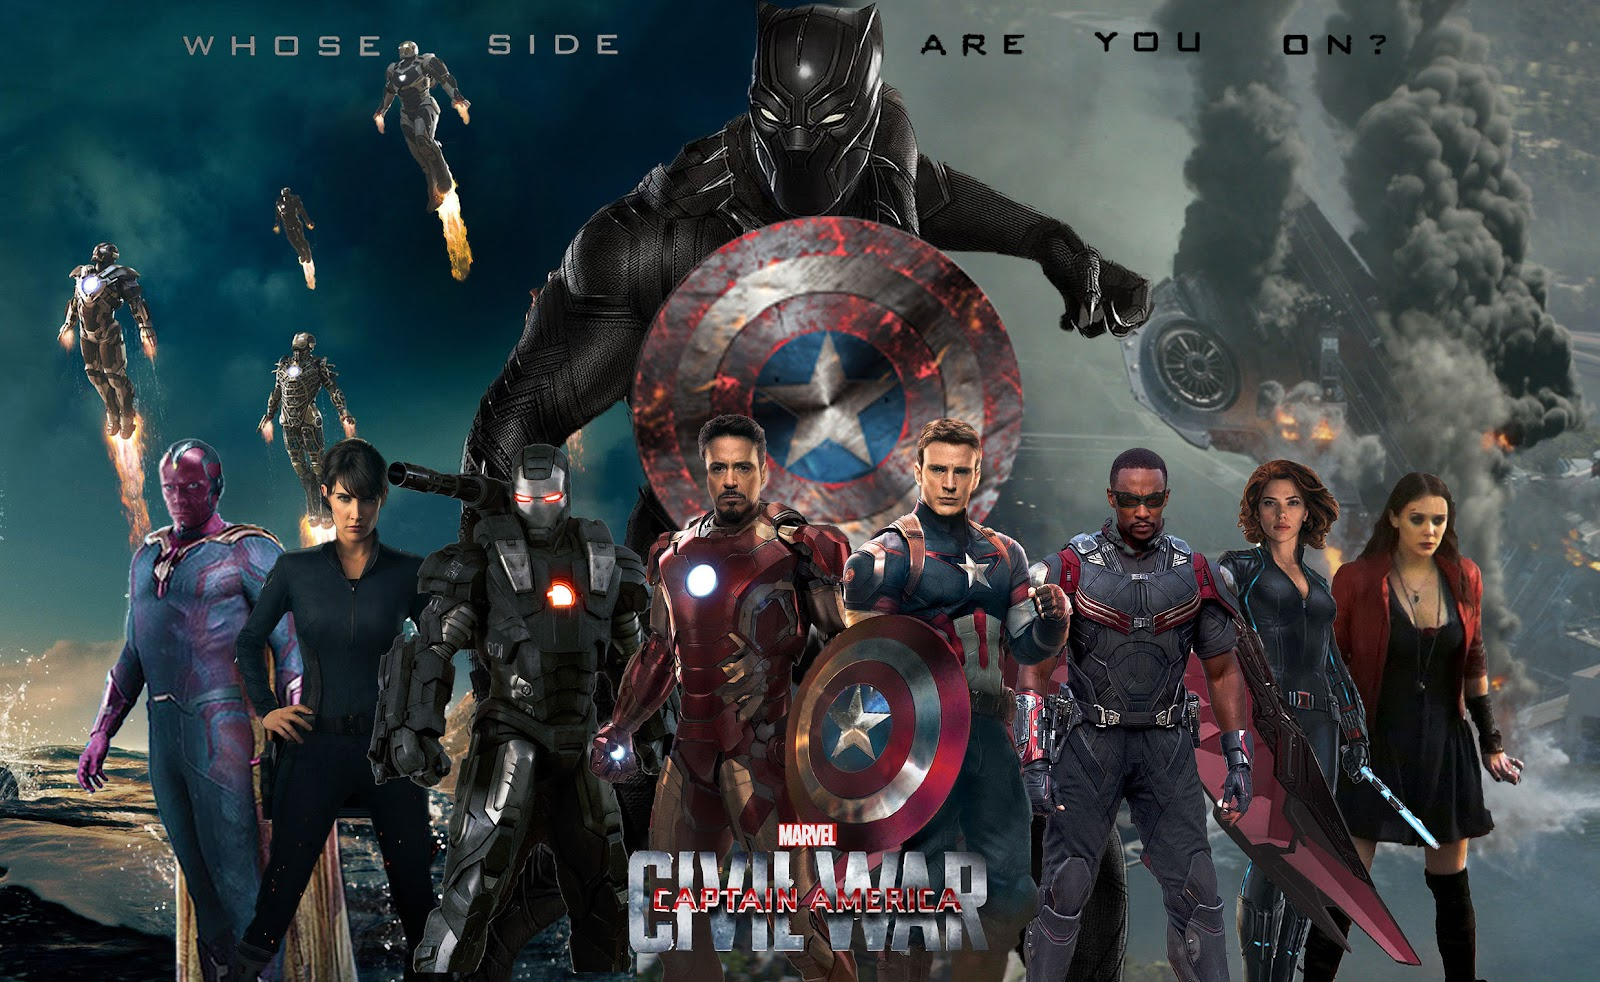 captain-america-civil-war-poster-wallpaper-captain-america-civil-war-black-panther-ver-432424.jpg